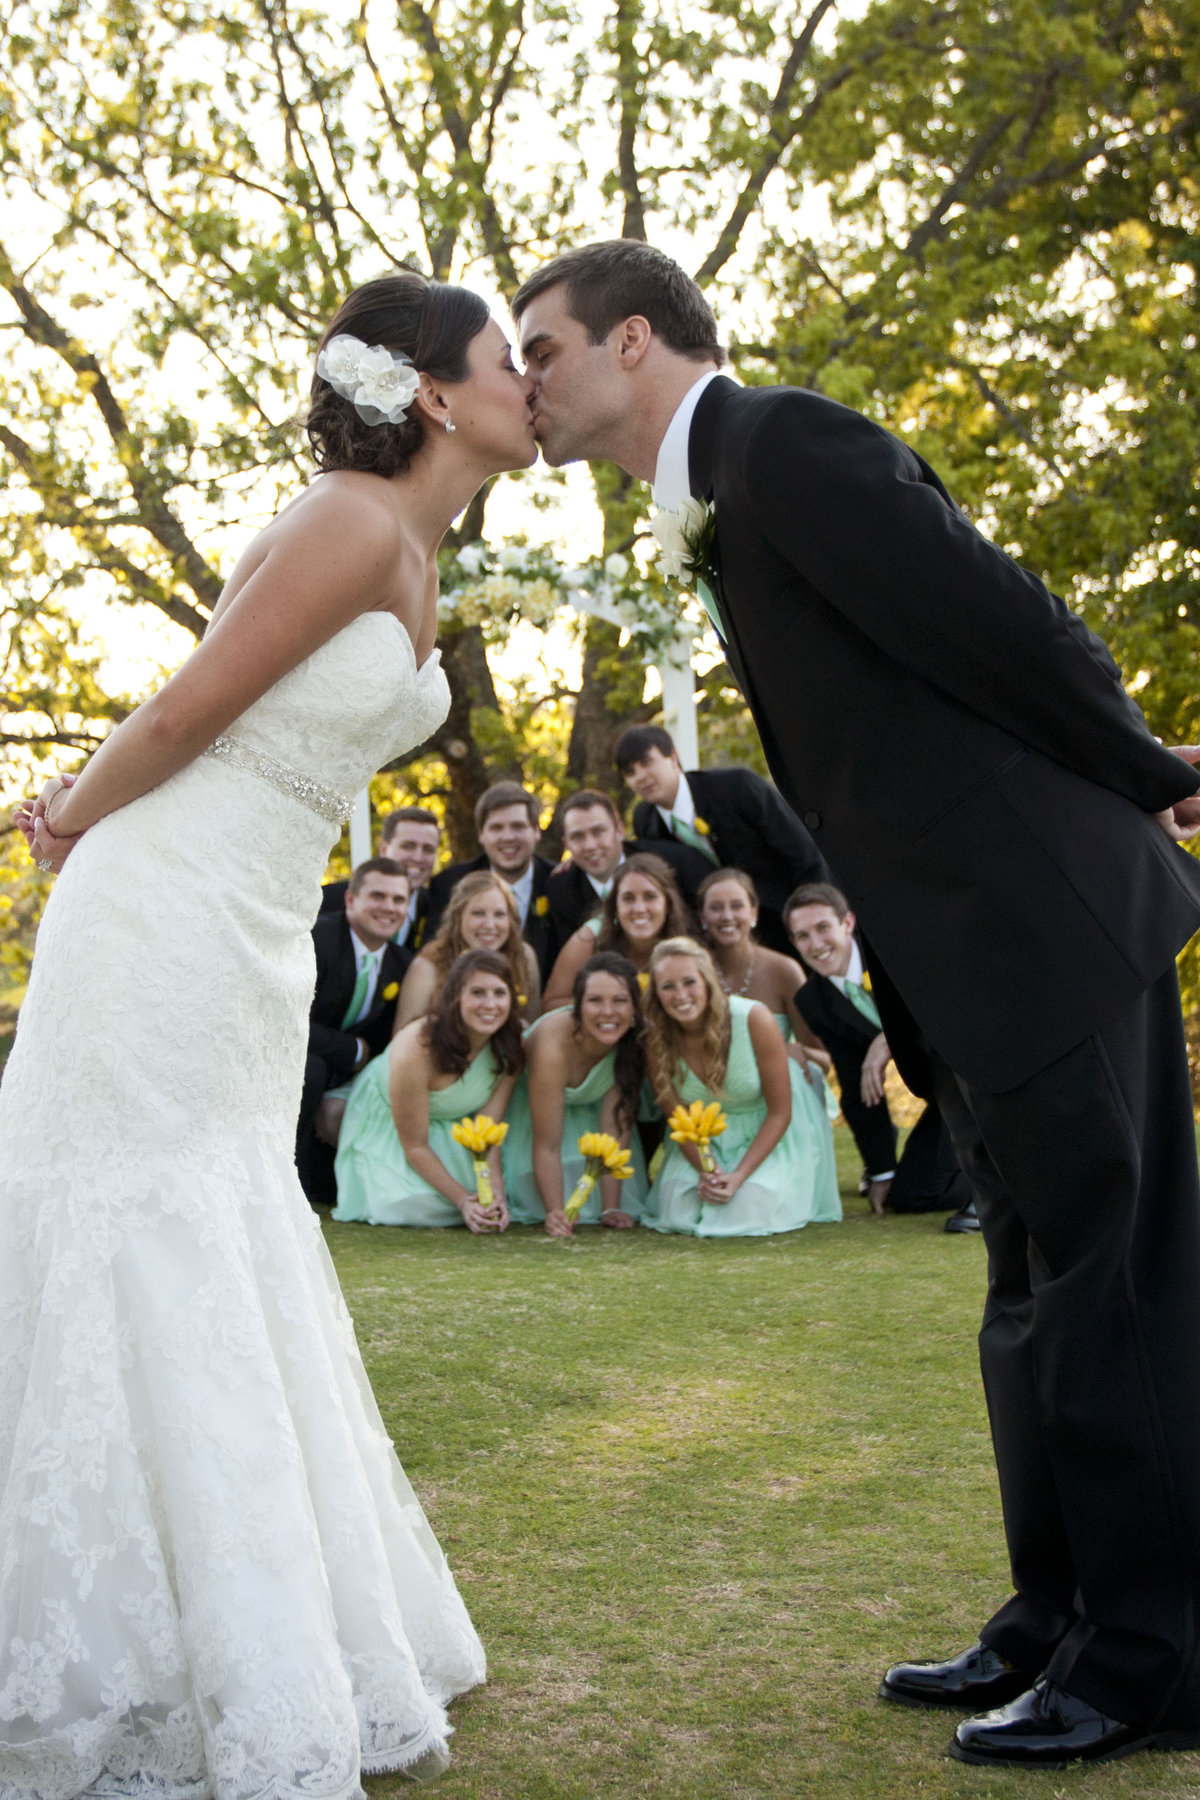 Bride and Groom kiss bridal party in background in teal dresses